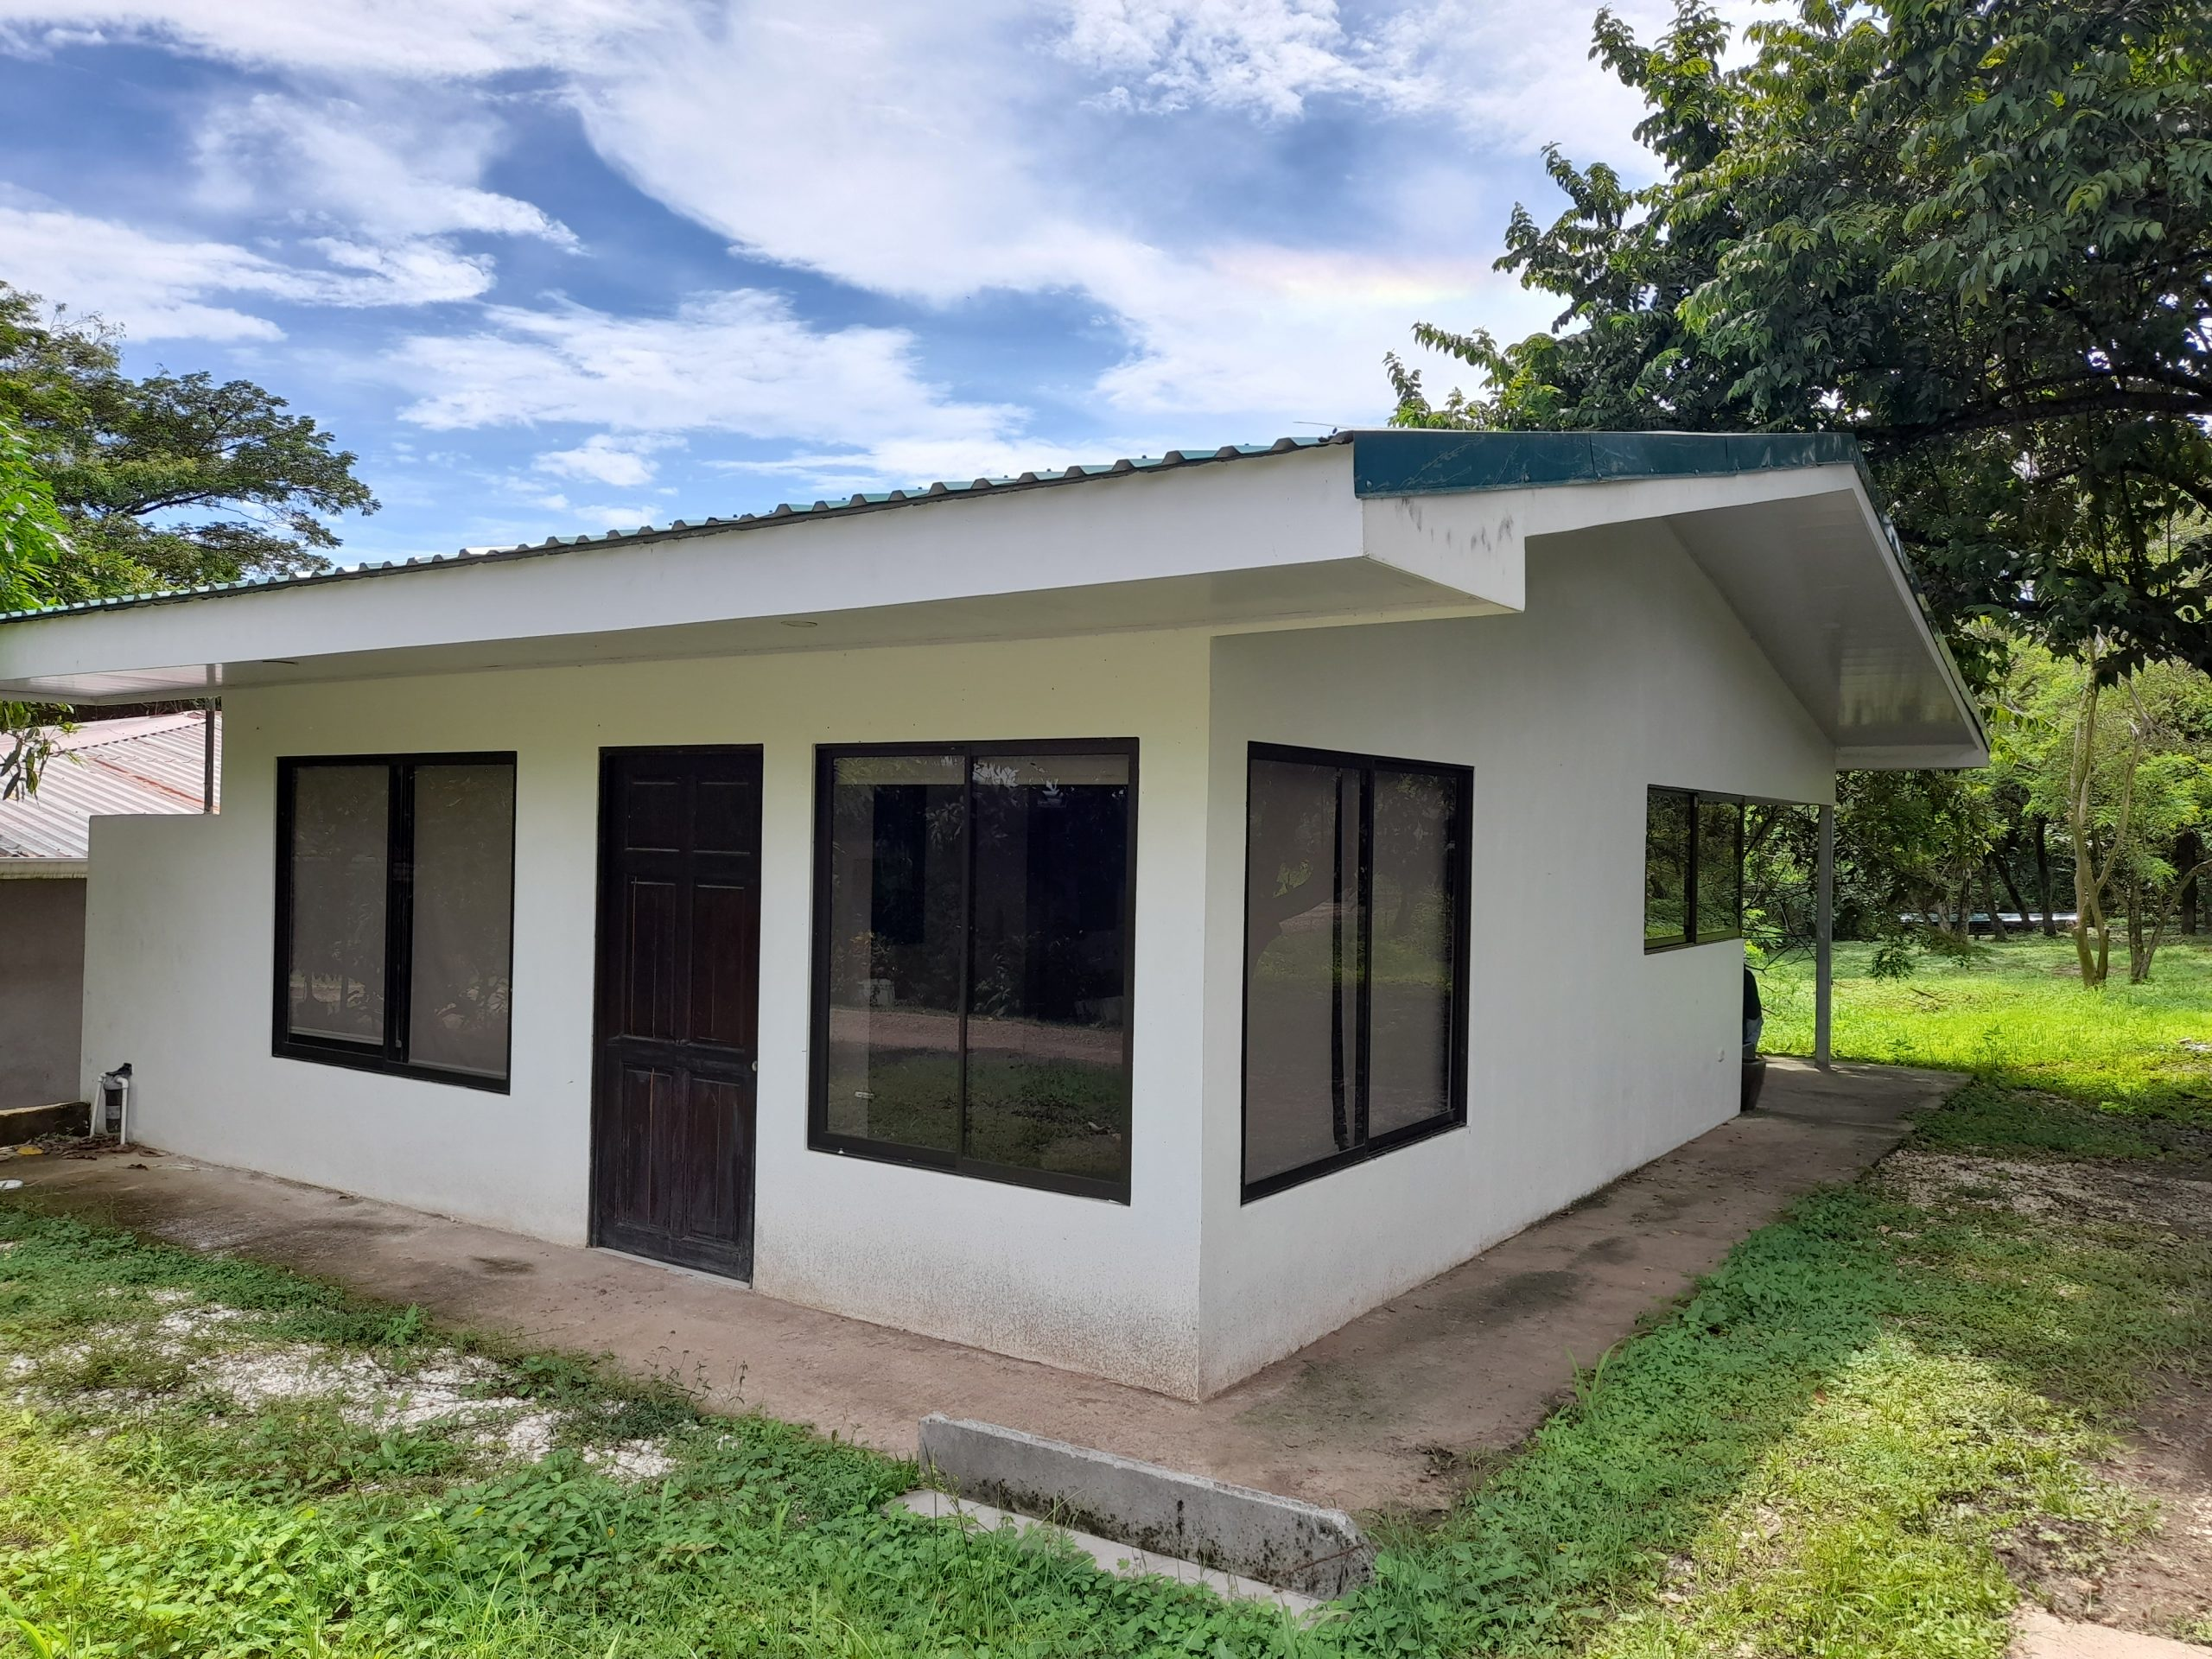 2 bedroom family home within a budget!